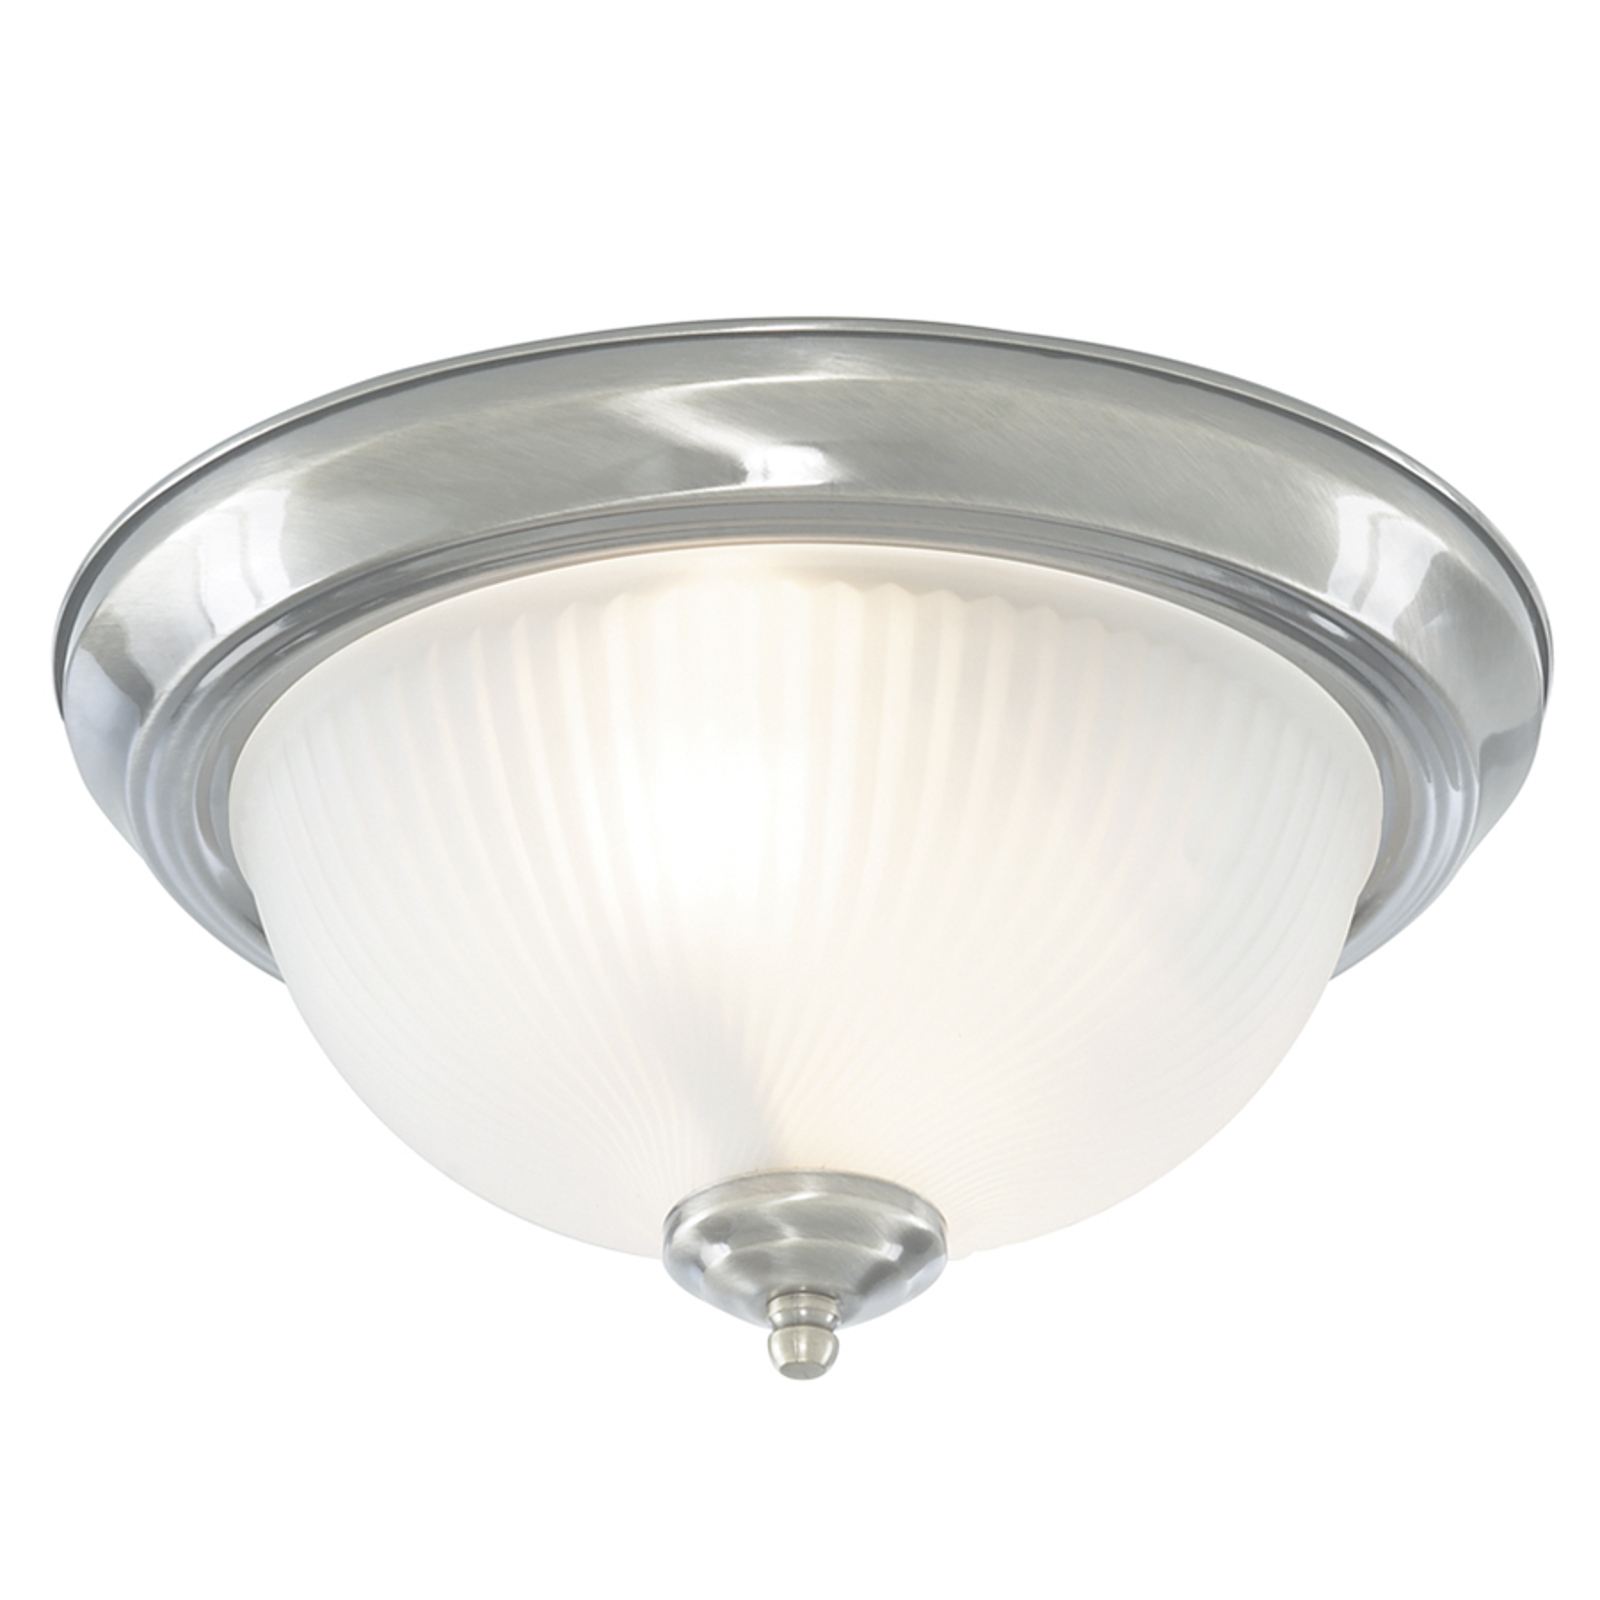 American Diner ceiling light_8570916_1